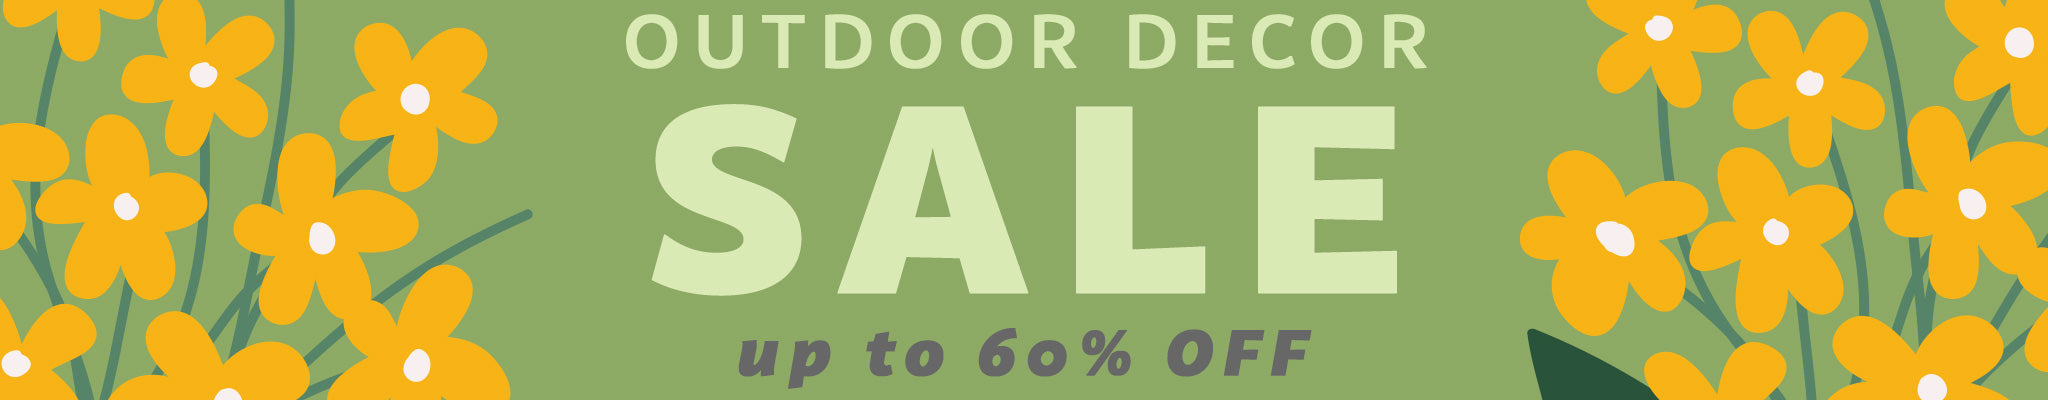 Outdoor Decor Sale | Up to 60% OFF